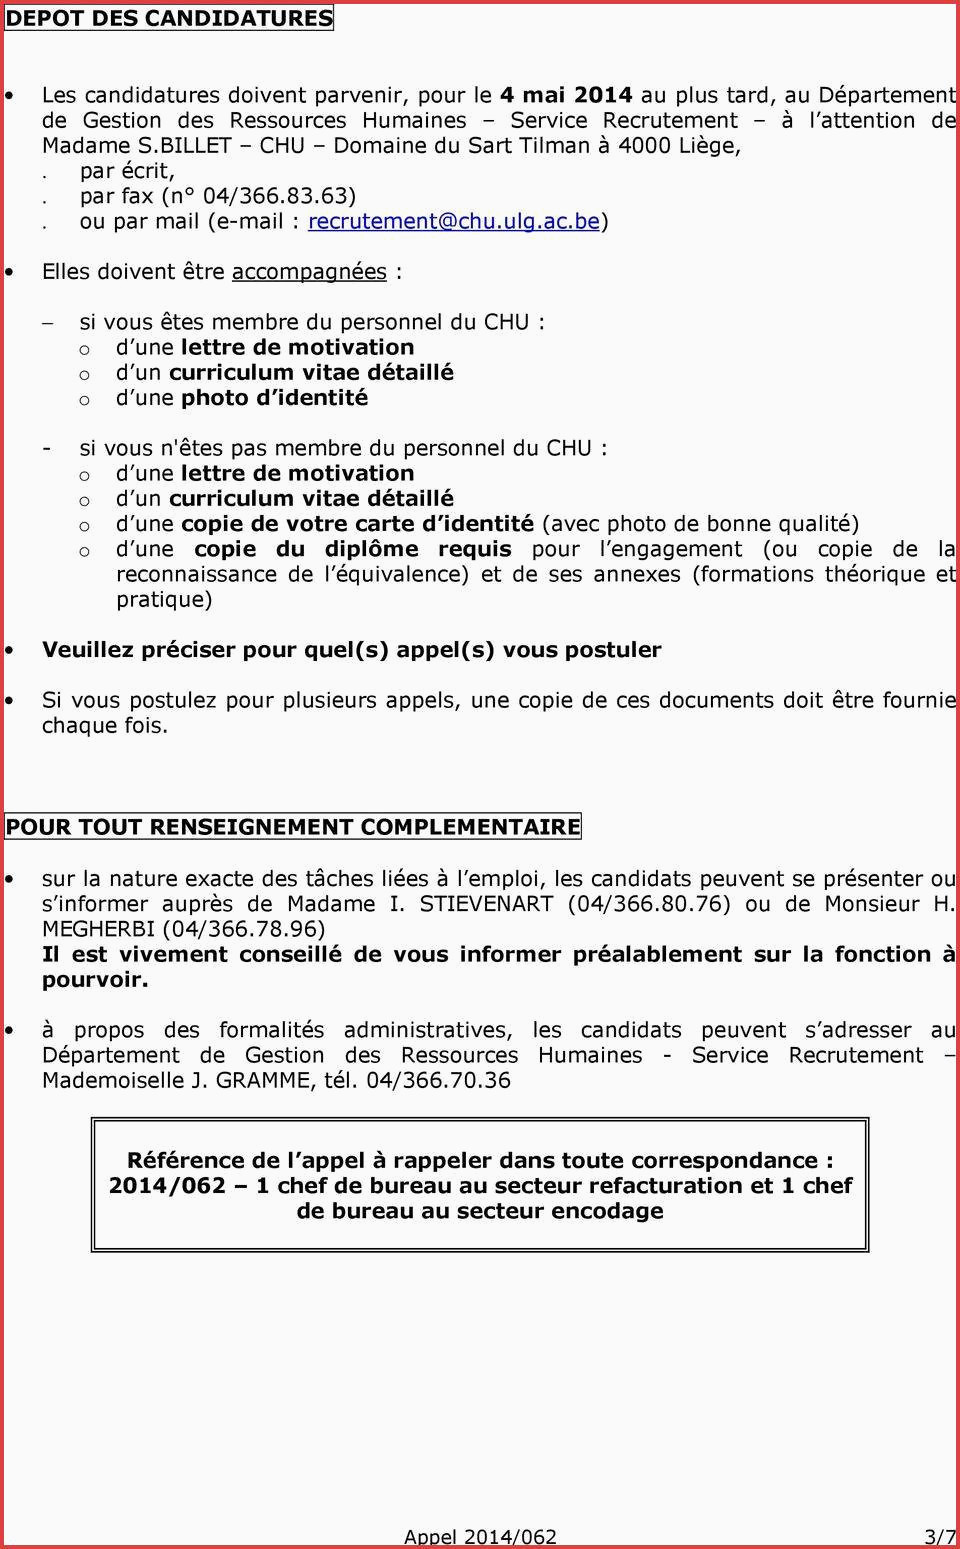 Lettre De Motivation Licence Rh Alternance 99 Exemple Lettre De Motivation assistant Rh Alternance